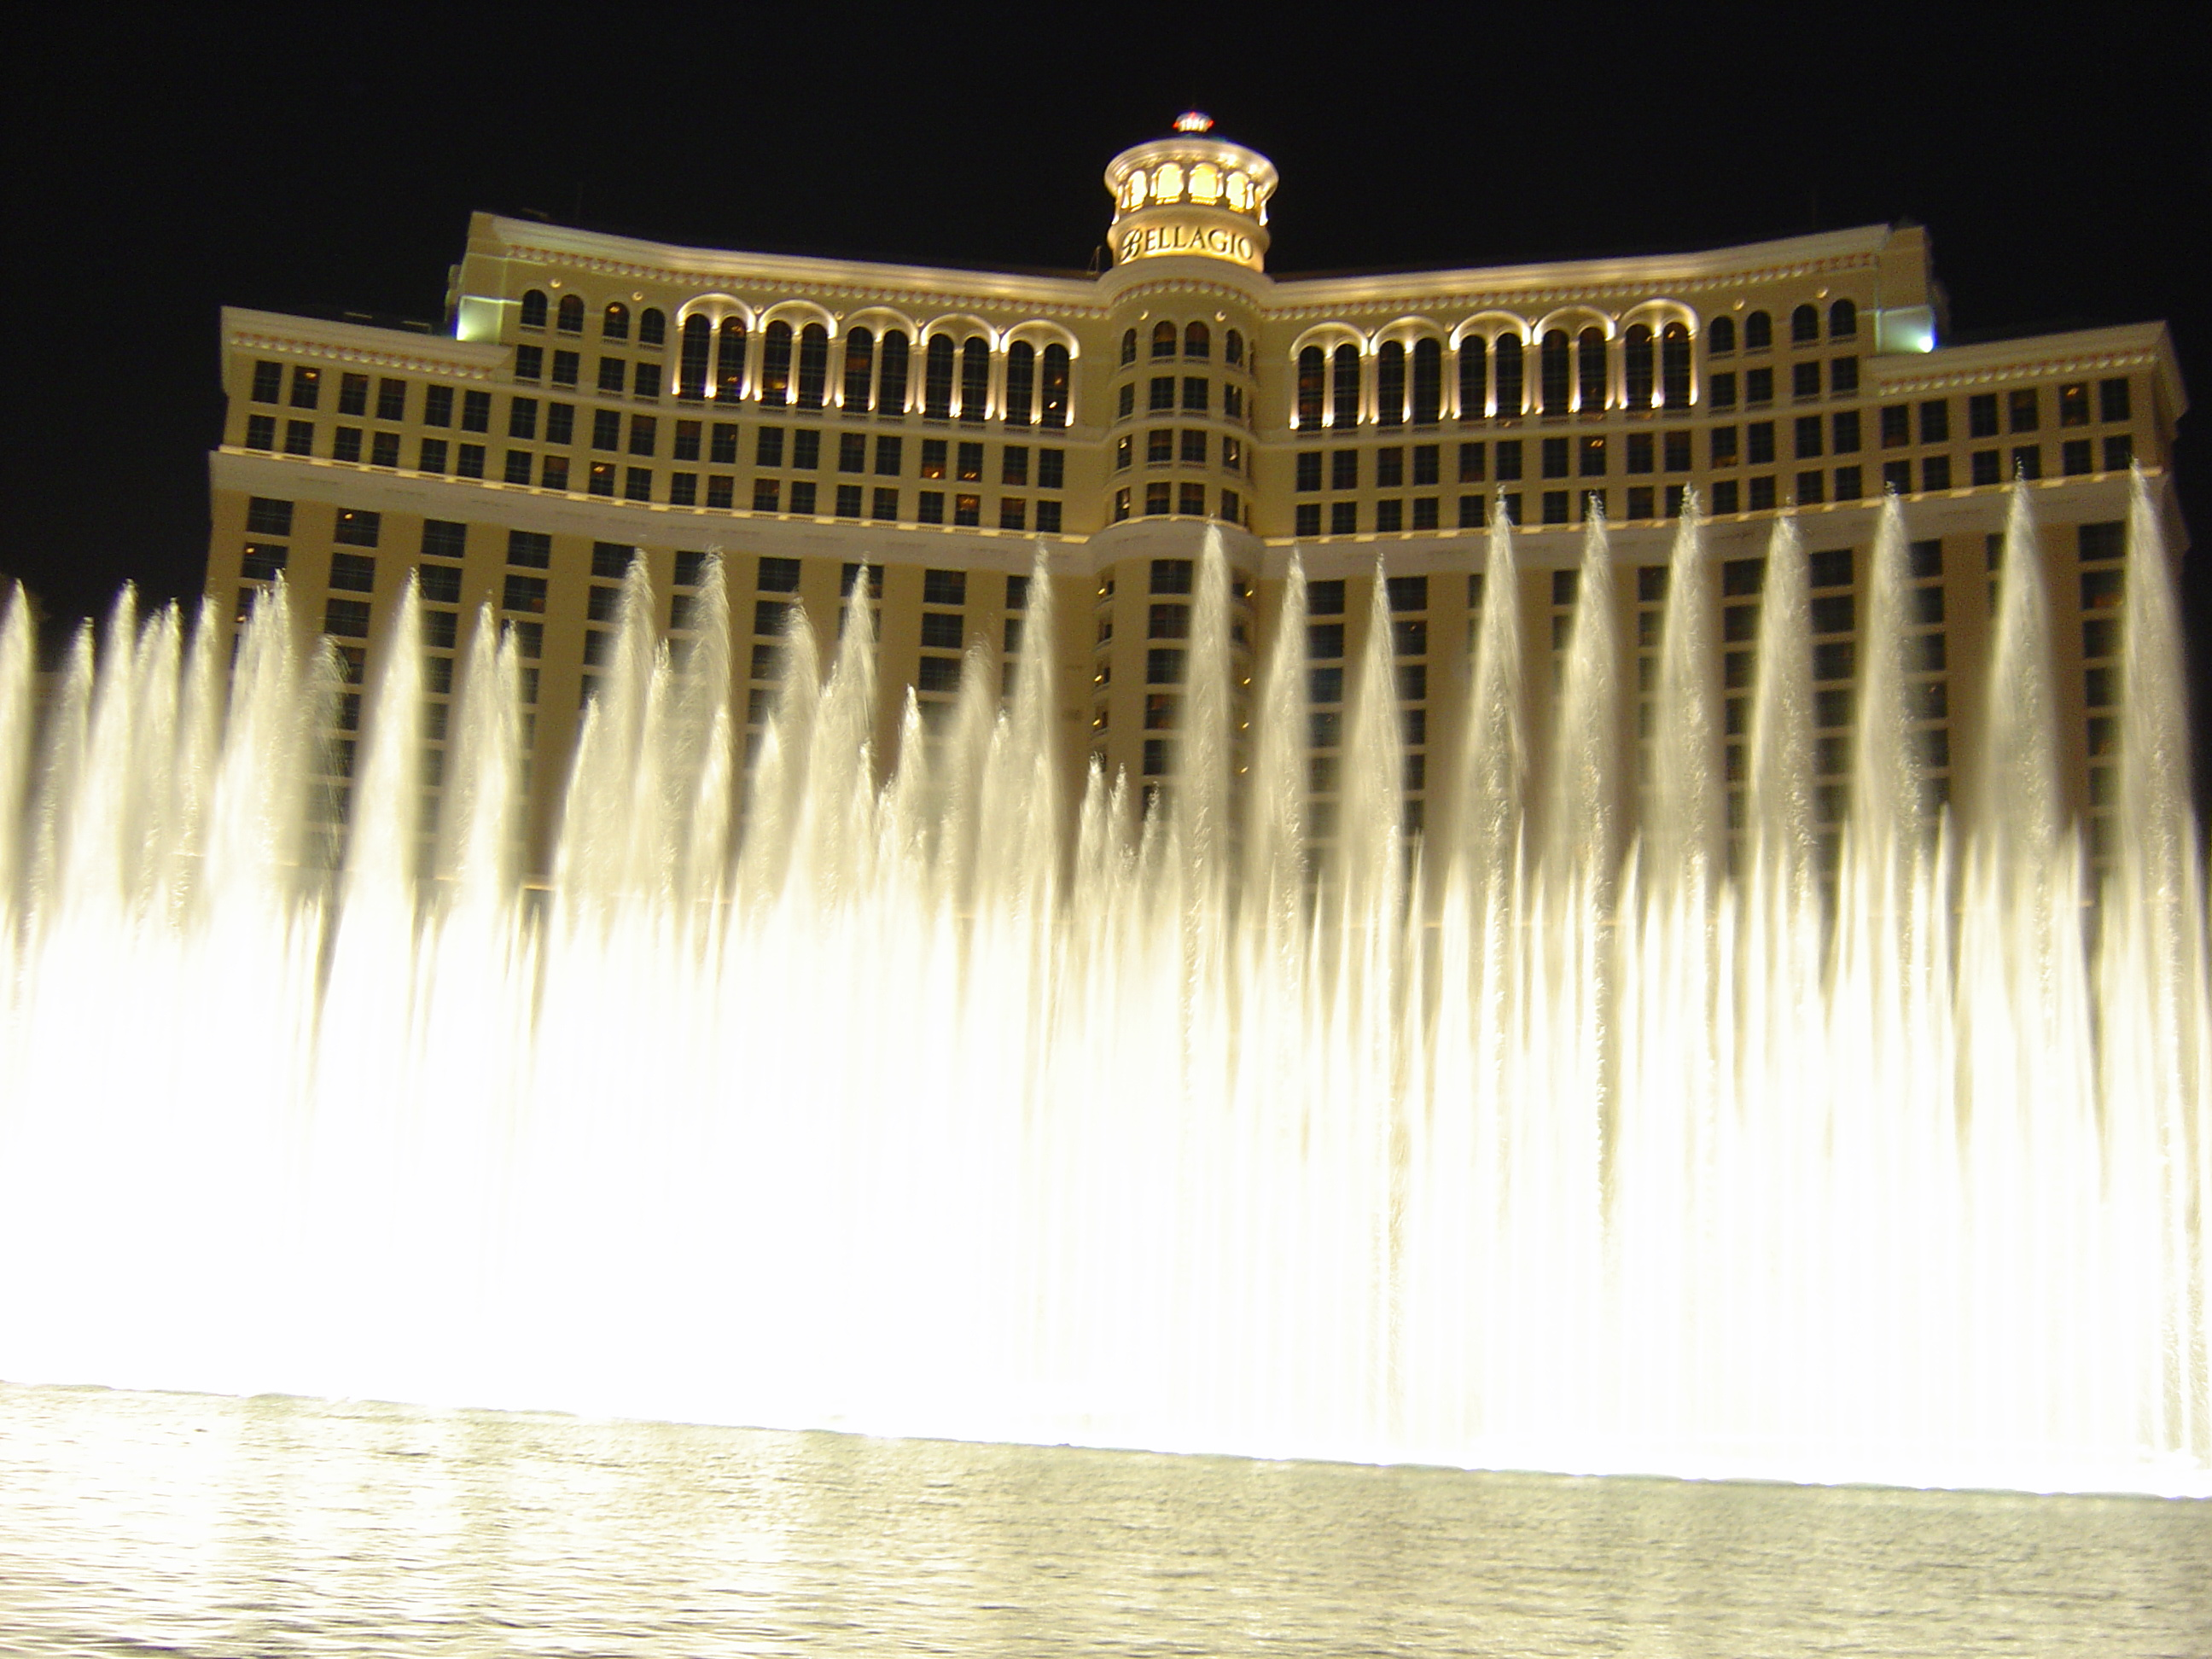 fountains at bellagio, las vegas